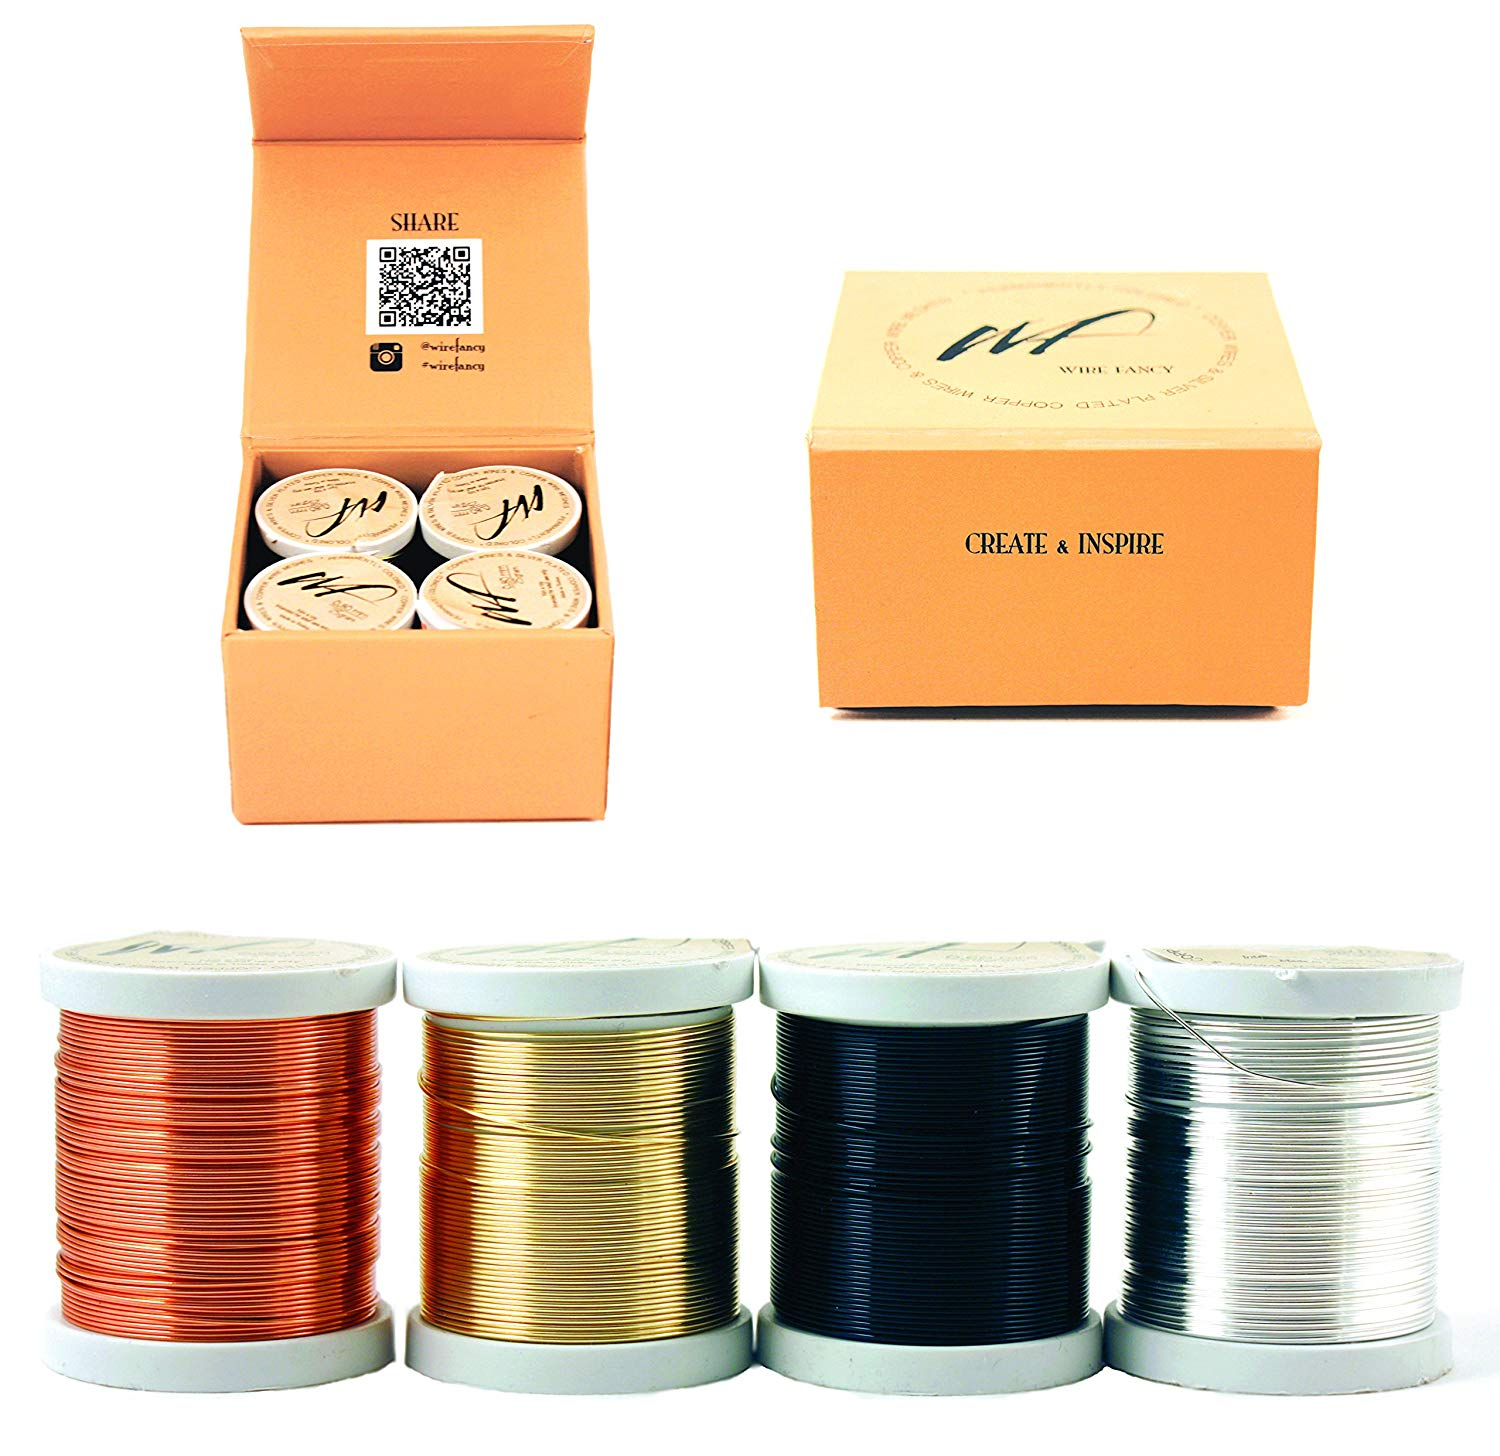 22 Gauge Tarnish Resistant Silver-Plated Copper and Copper Wire Set of 4 spools for Wrapping Jewelry Craft Making Beading Floral Colored DIY Wire kit (WF Color Set 1, 0.60 mm)